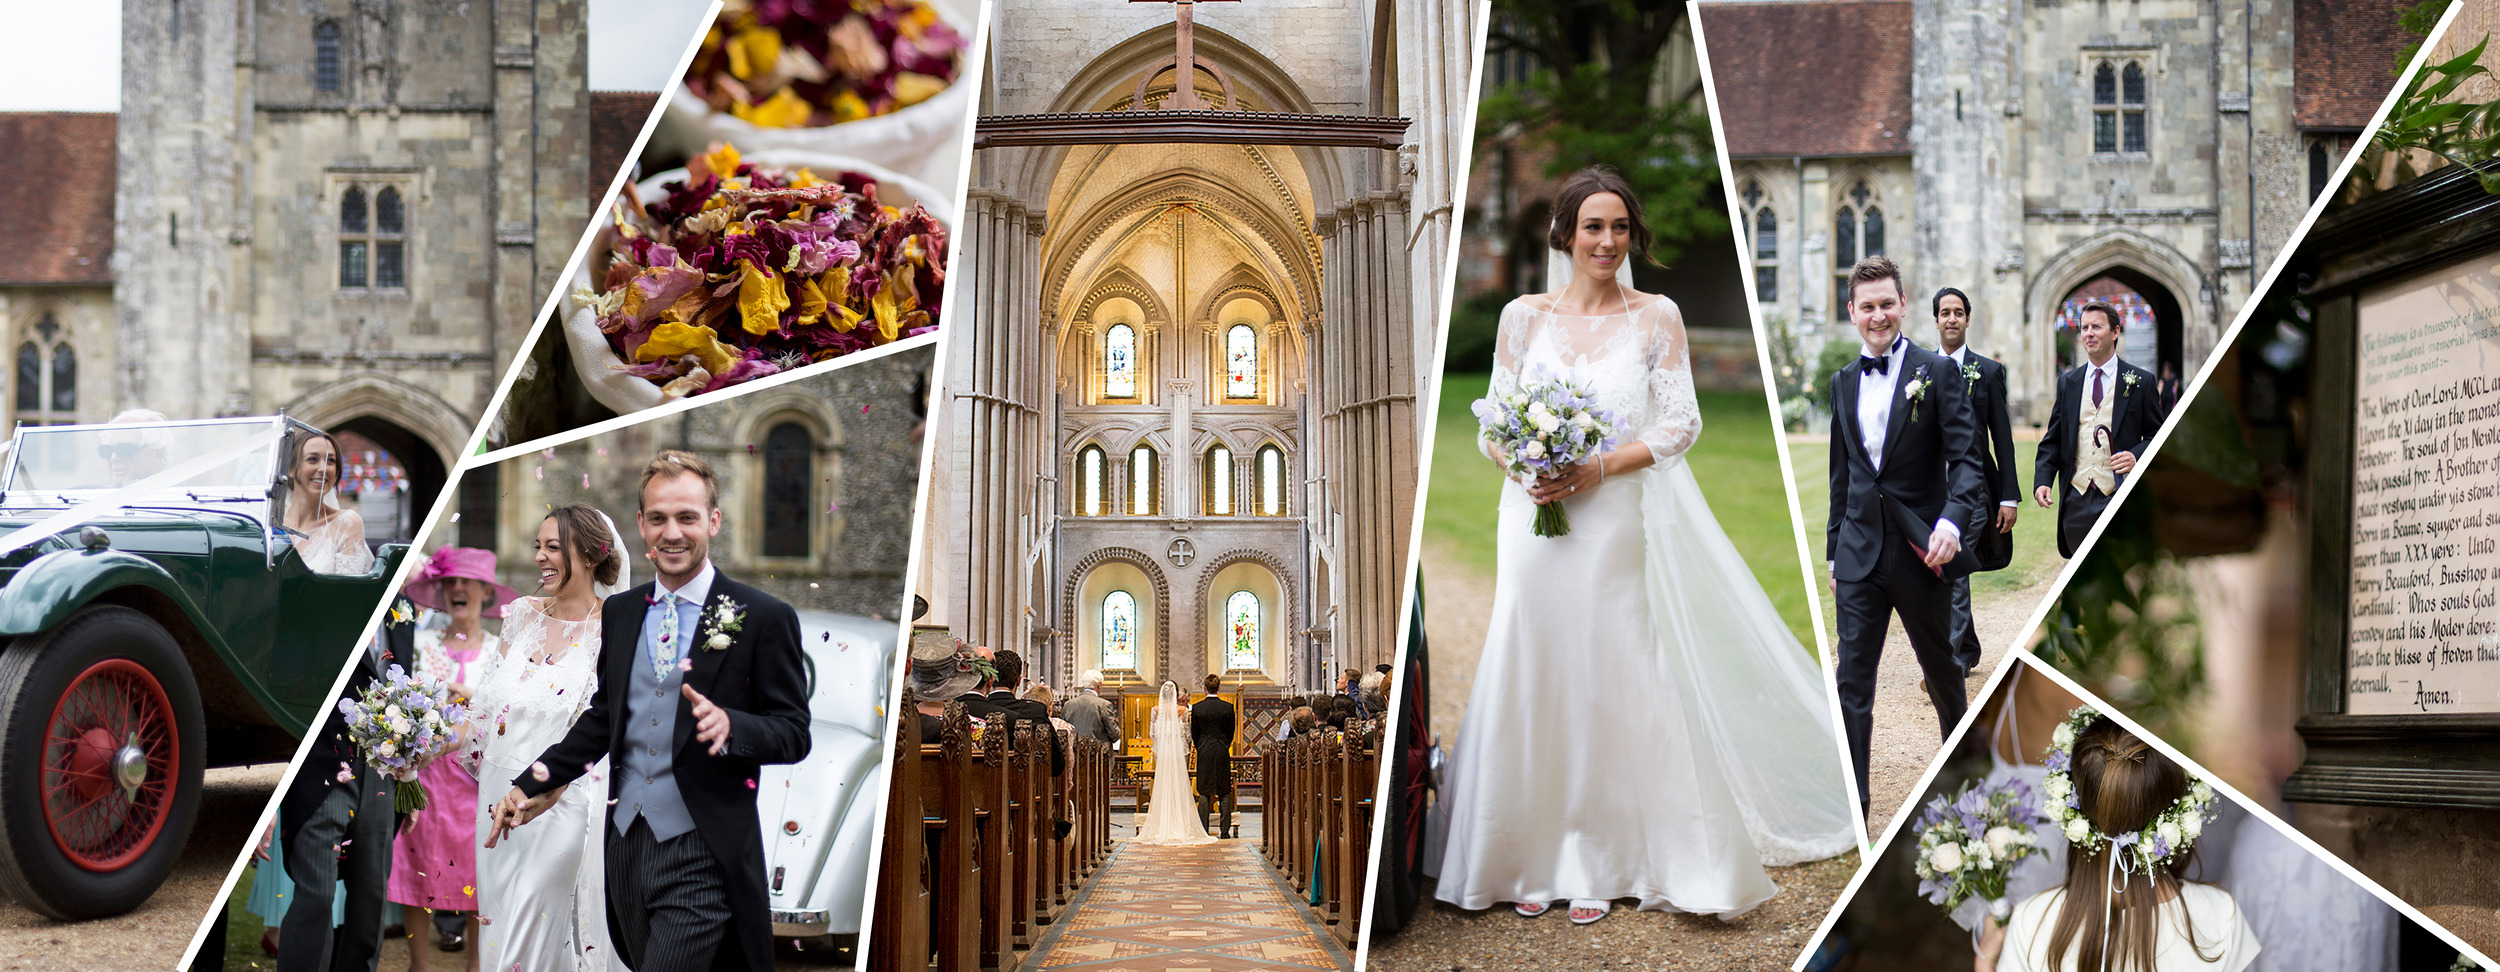 Winchester wedding venue and photography at St Cross Church